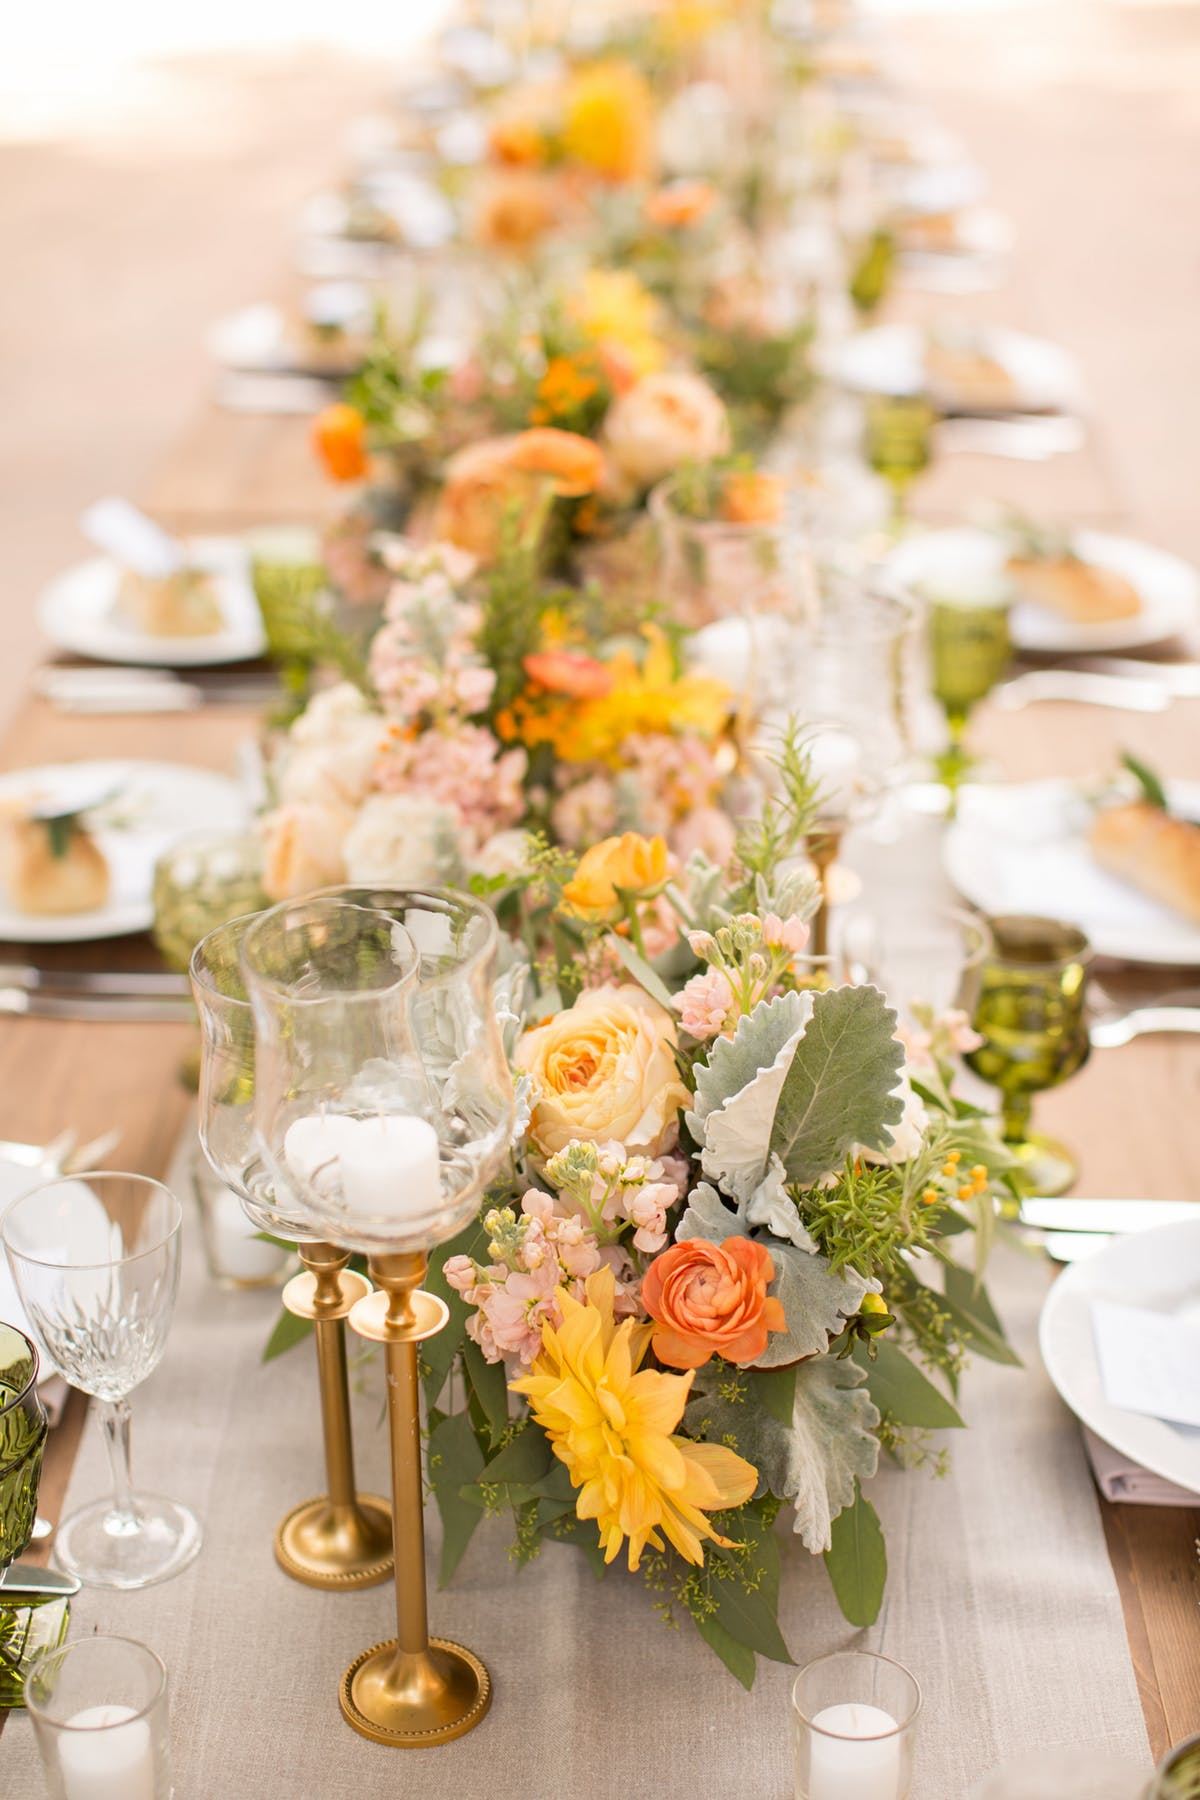 www.santabarbarawedding.com | Anna J Photography | Alegria by Design | Firestone Vineyard | Reception Table Details